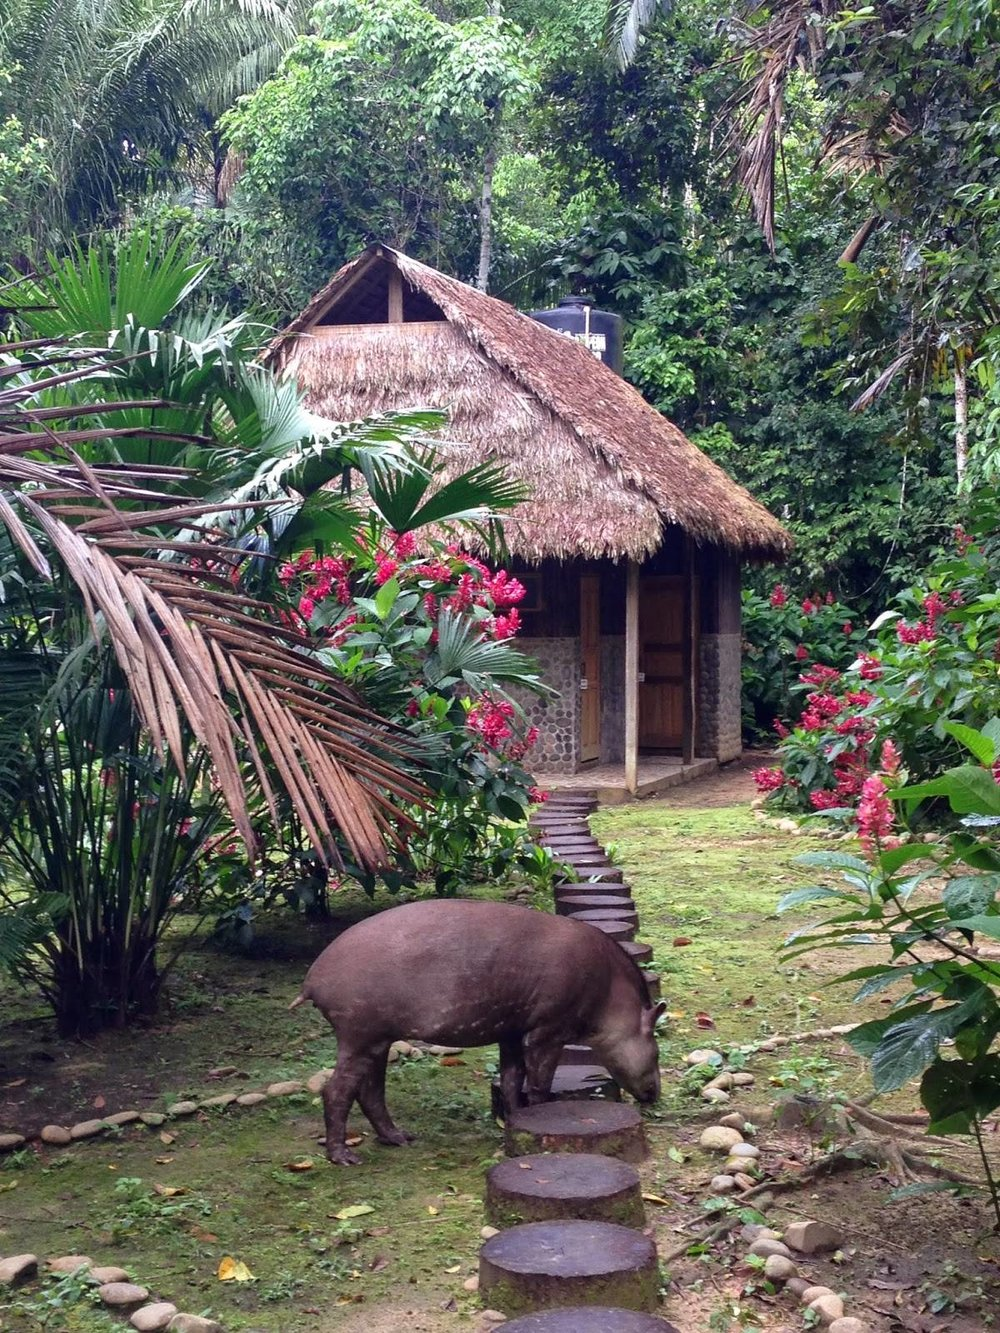 Welcome to the Madidi Jungle Ecolodge, our home away from home in the Amazon Jungle.